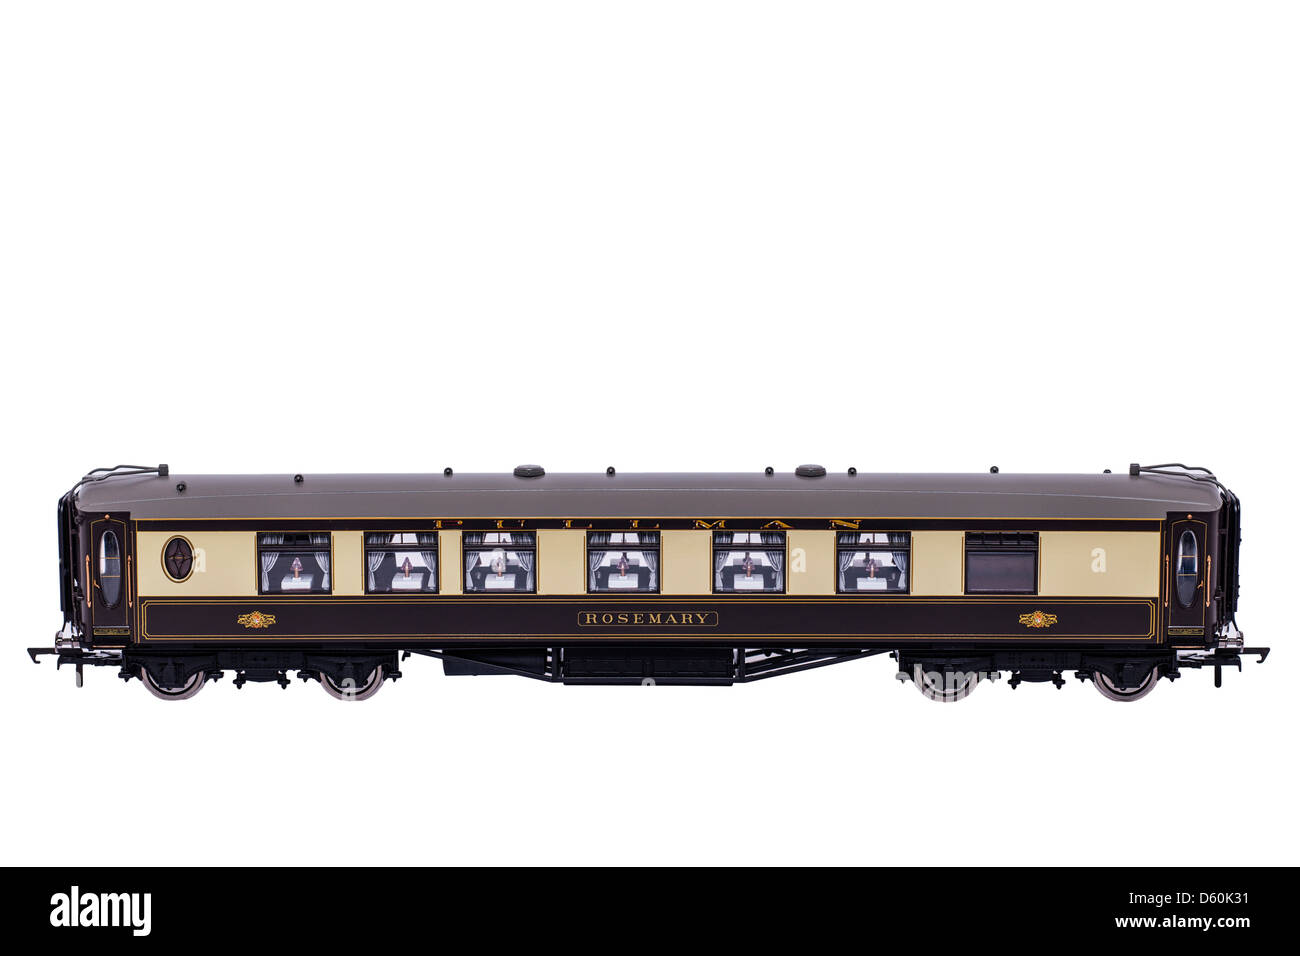 A Hornby model steam train Pullman carriage on a white background - Stock Image